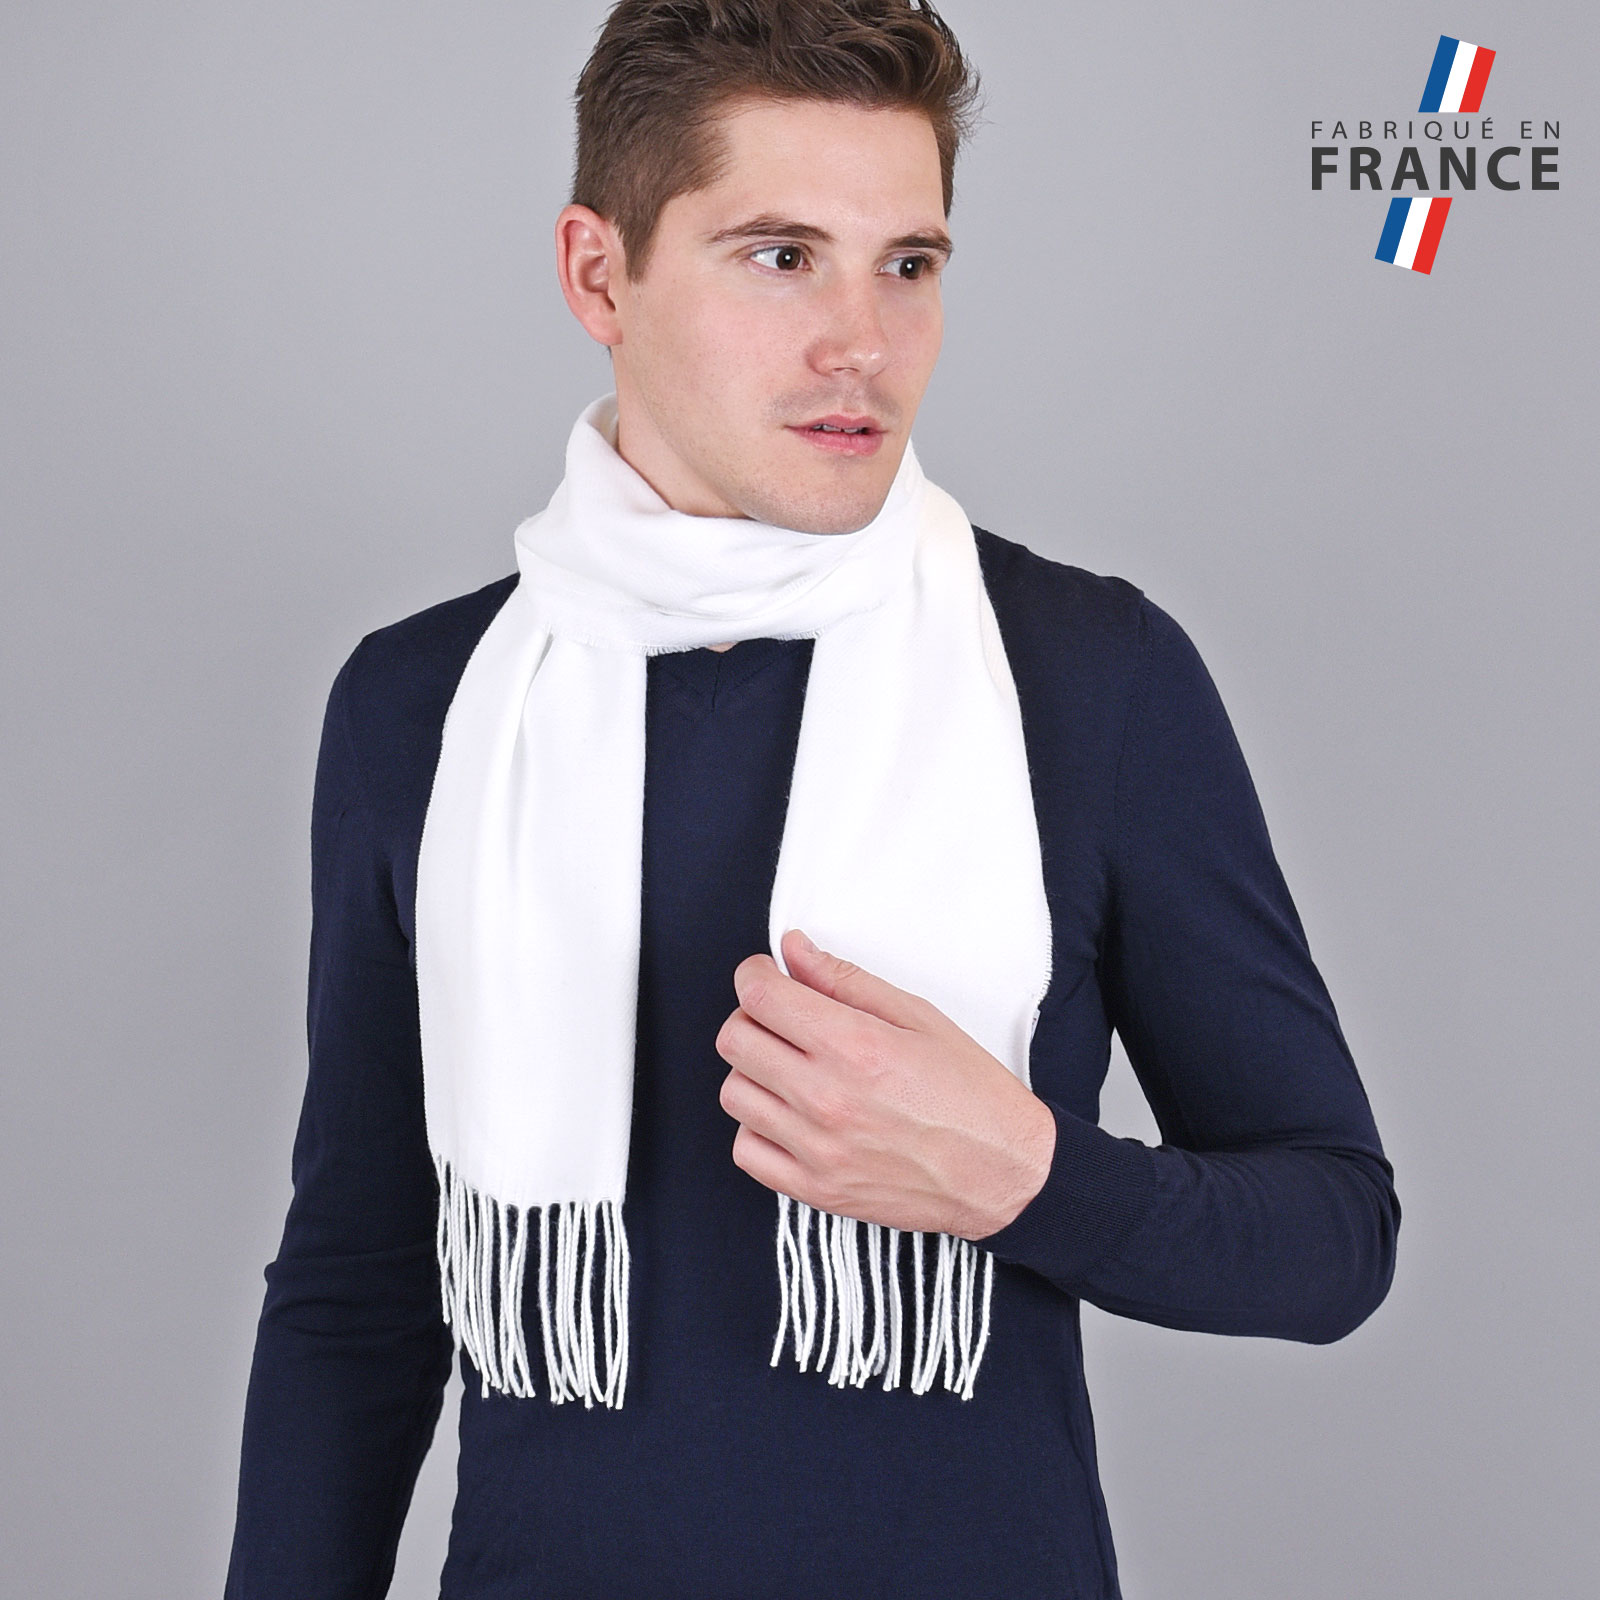 AT-03432-VH16-LB_FR-echarpe-homme-blanche-franges-fabrication-france